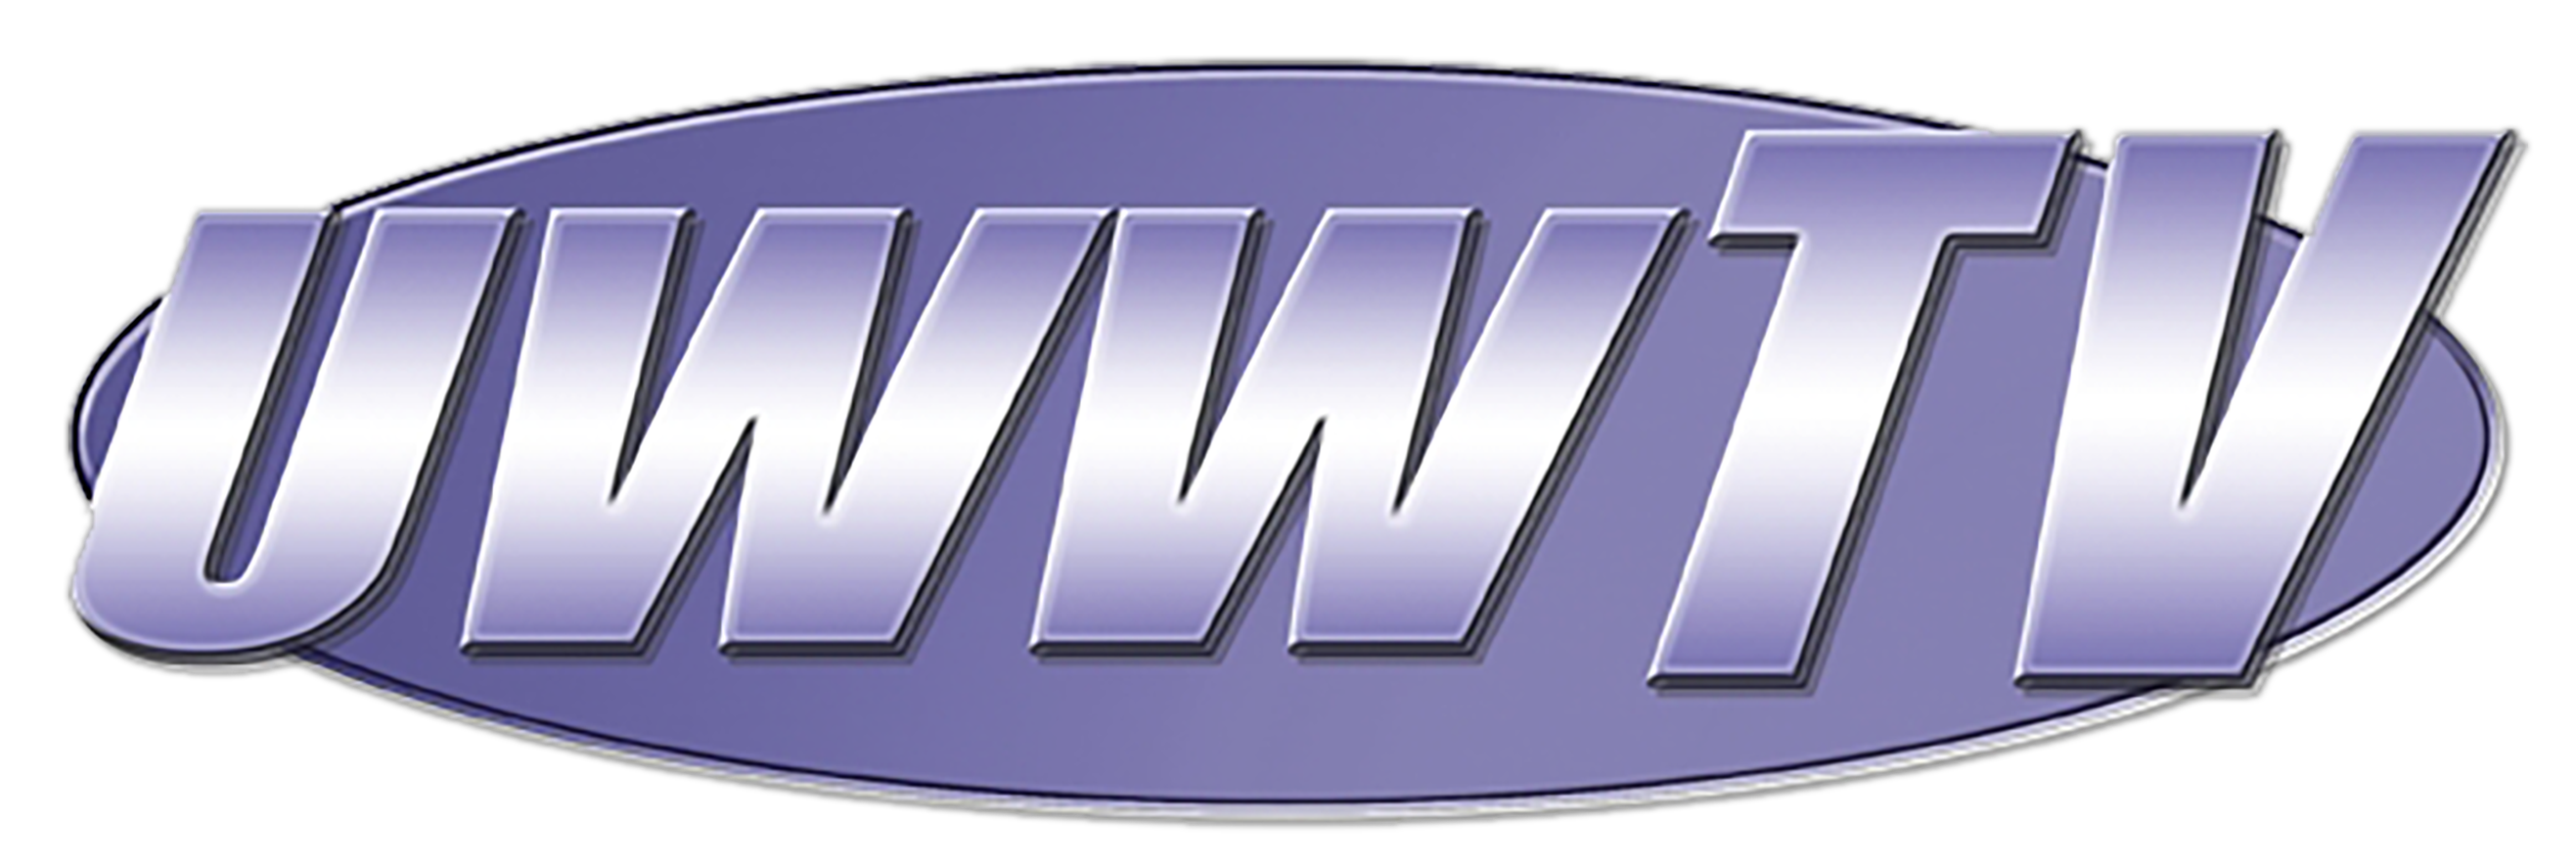 UWW TV logo